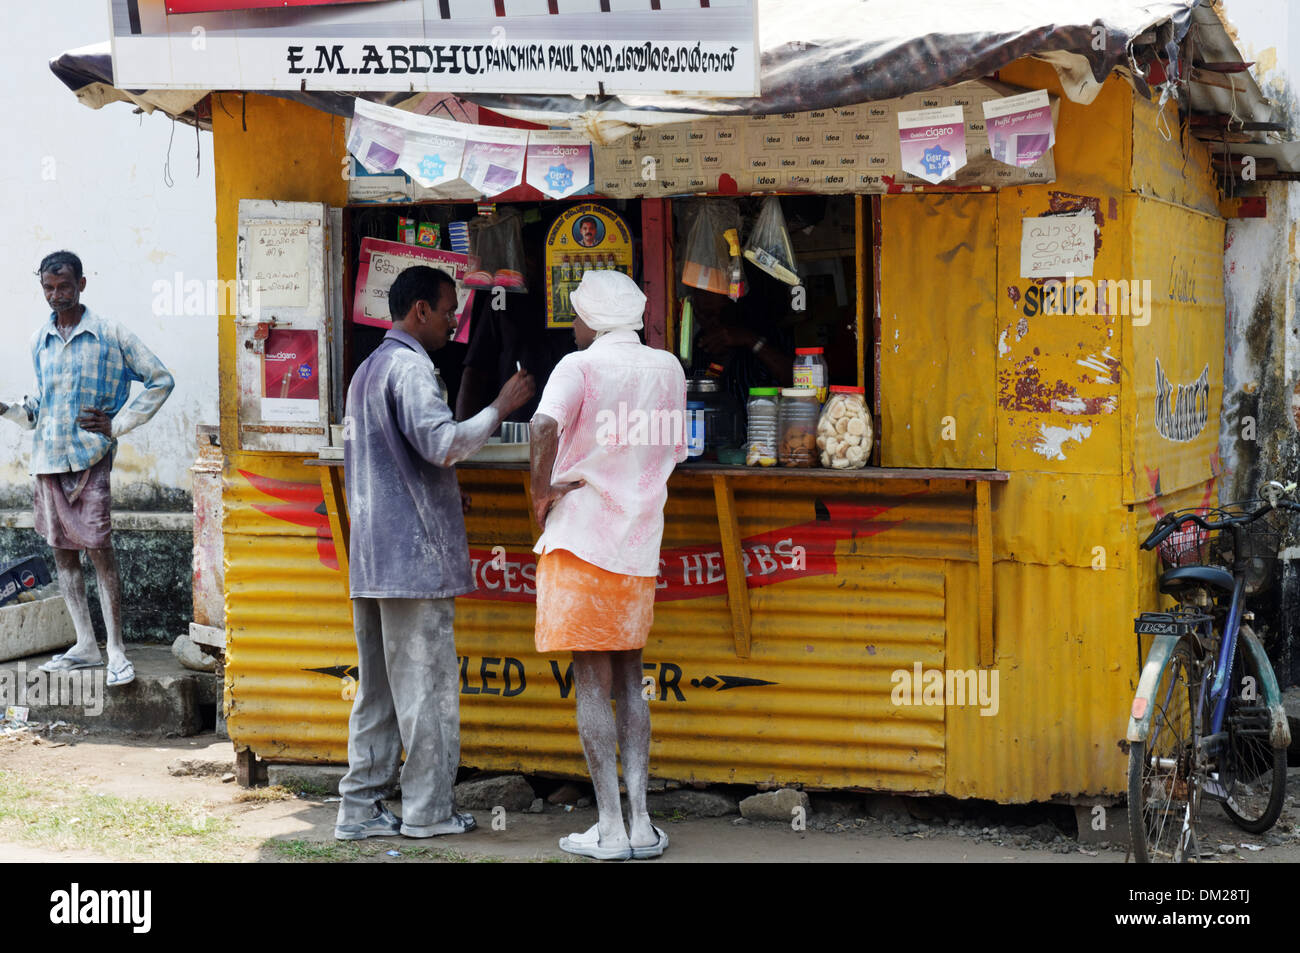 Indian workers buying sweets from a fast food kiosk in Kochin India - Stock Image